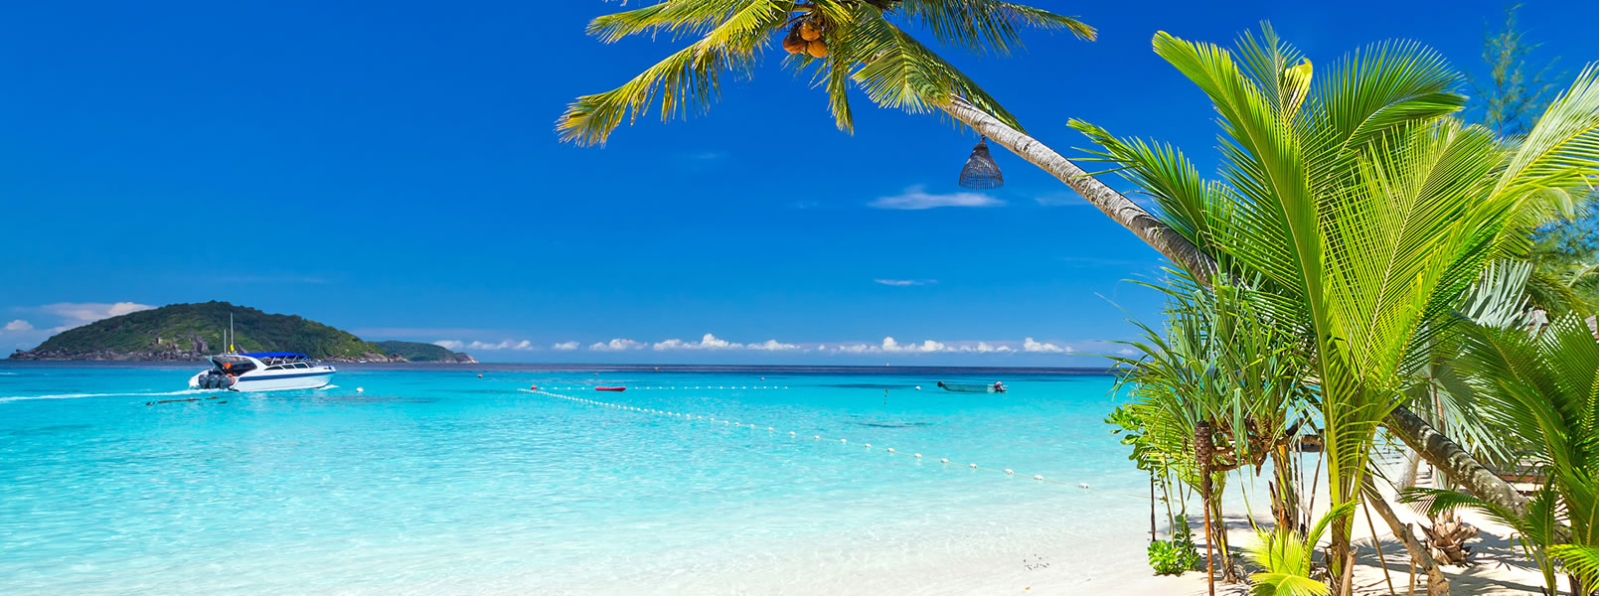 Jamaica Reopens Next Week As Caribbean Opens Back Up For